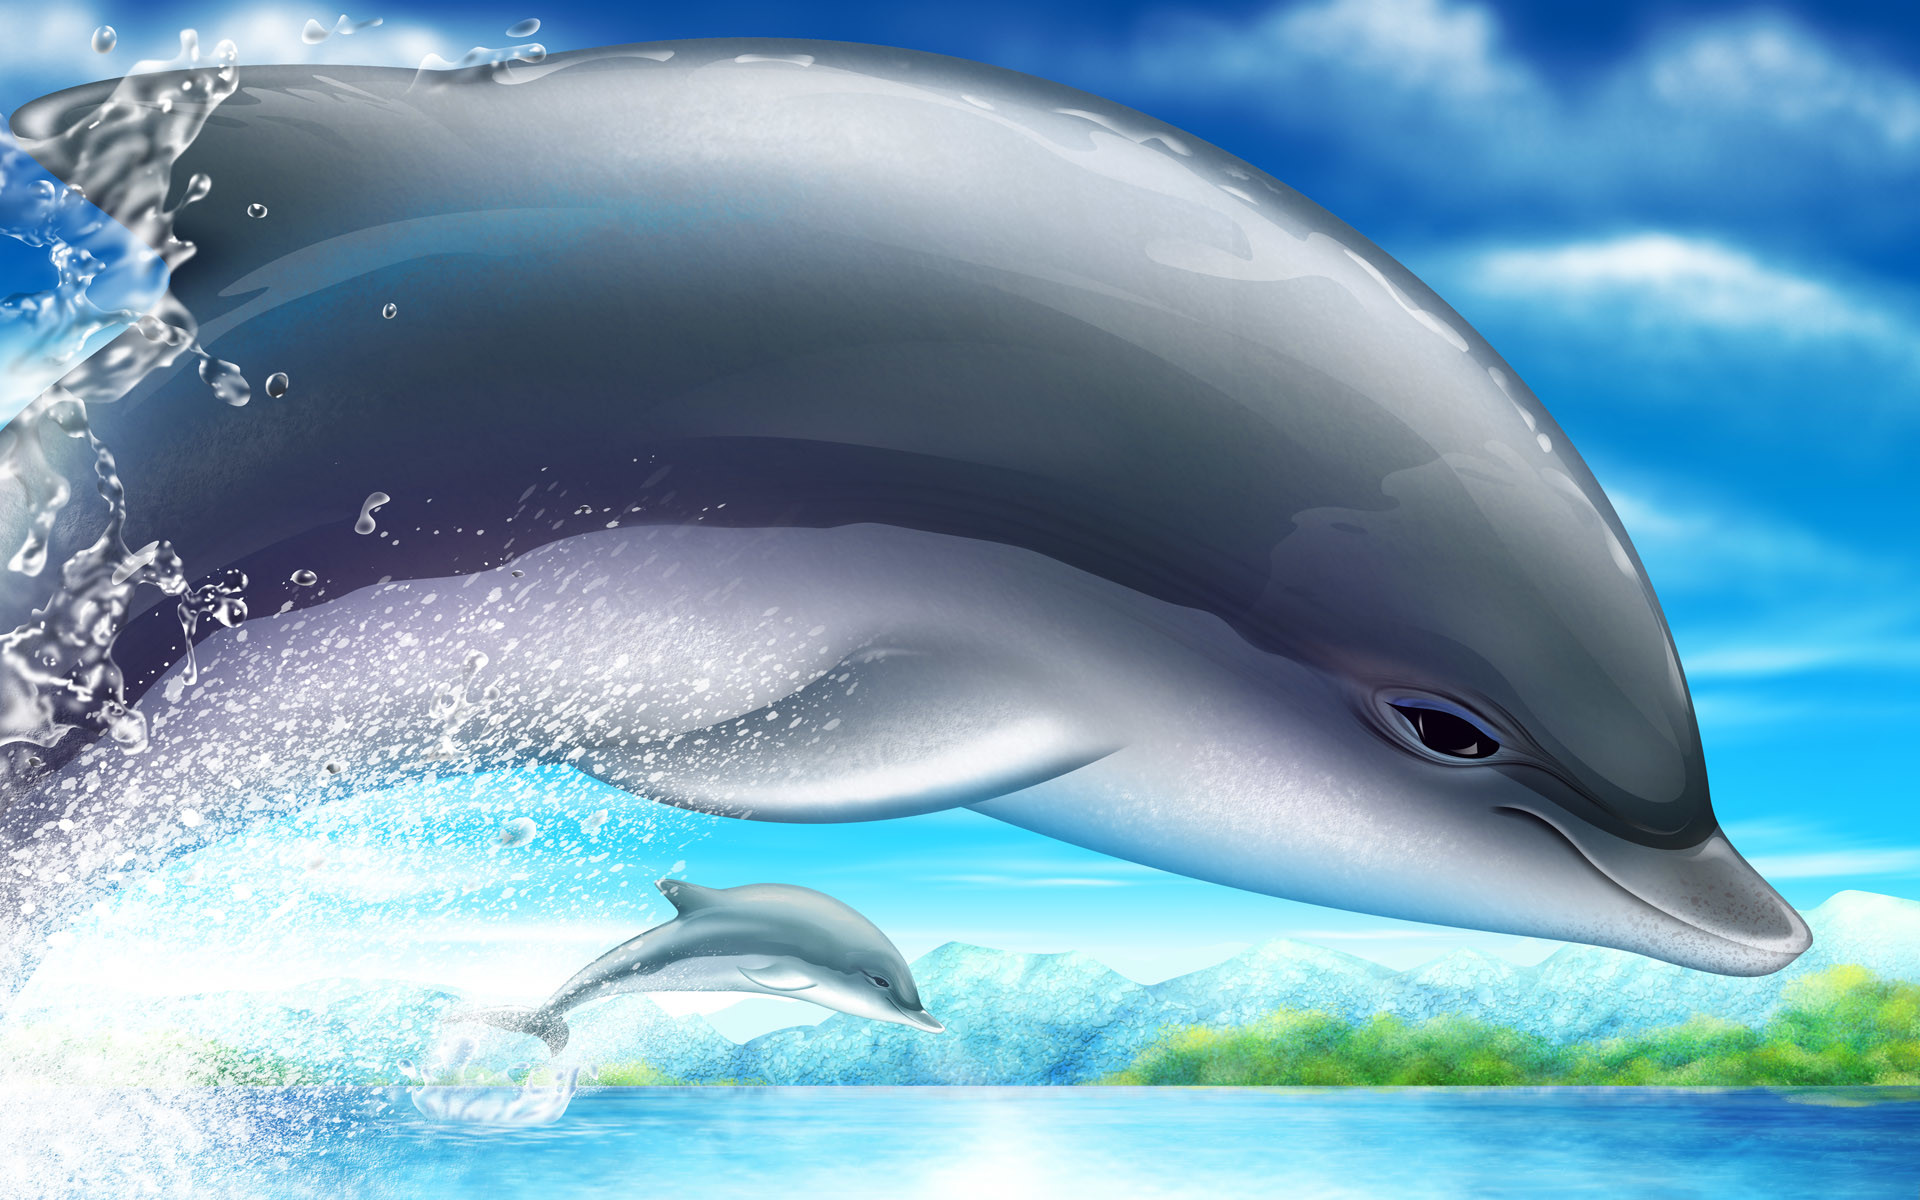 Animated dolphin screensavers wallpaper 46 images 1920x1200 animated dolphin wallpaper wallpaper animated dolphin wallpaper hd voltagebd Choice Image